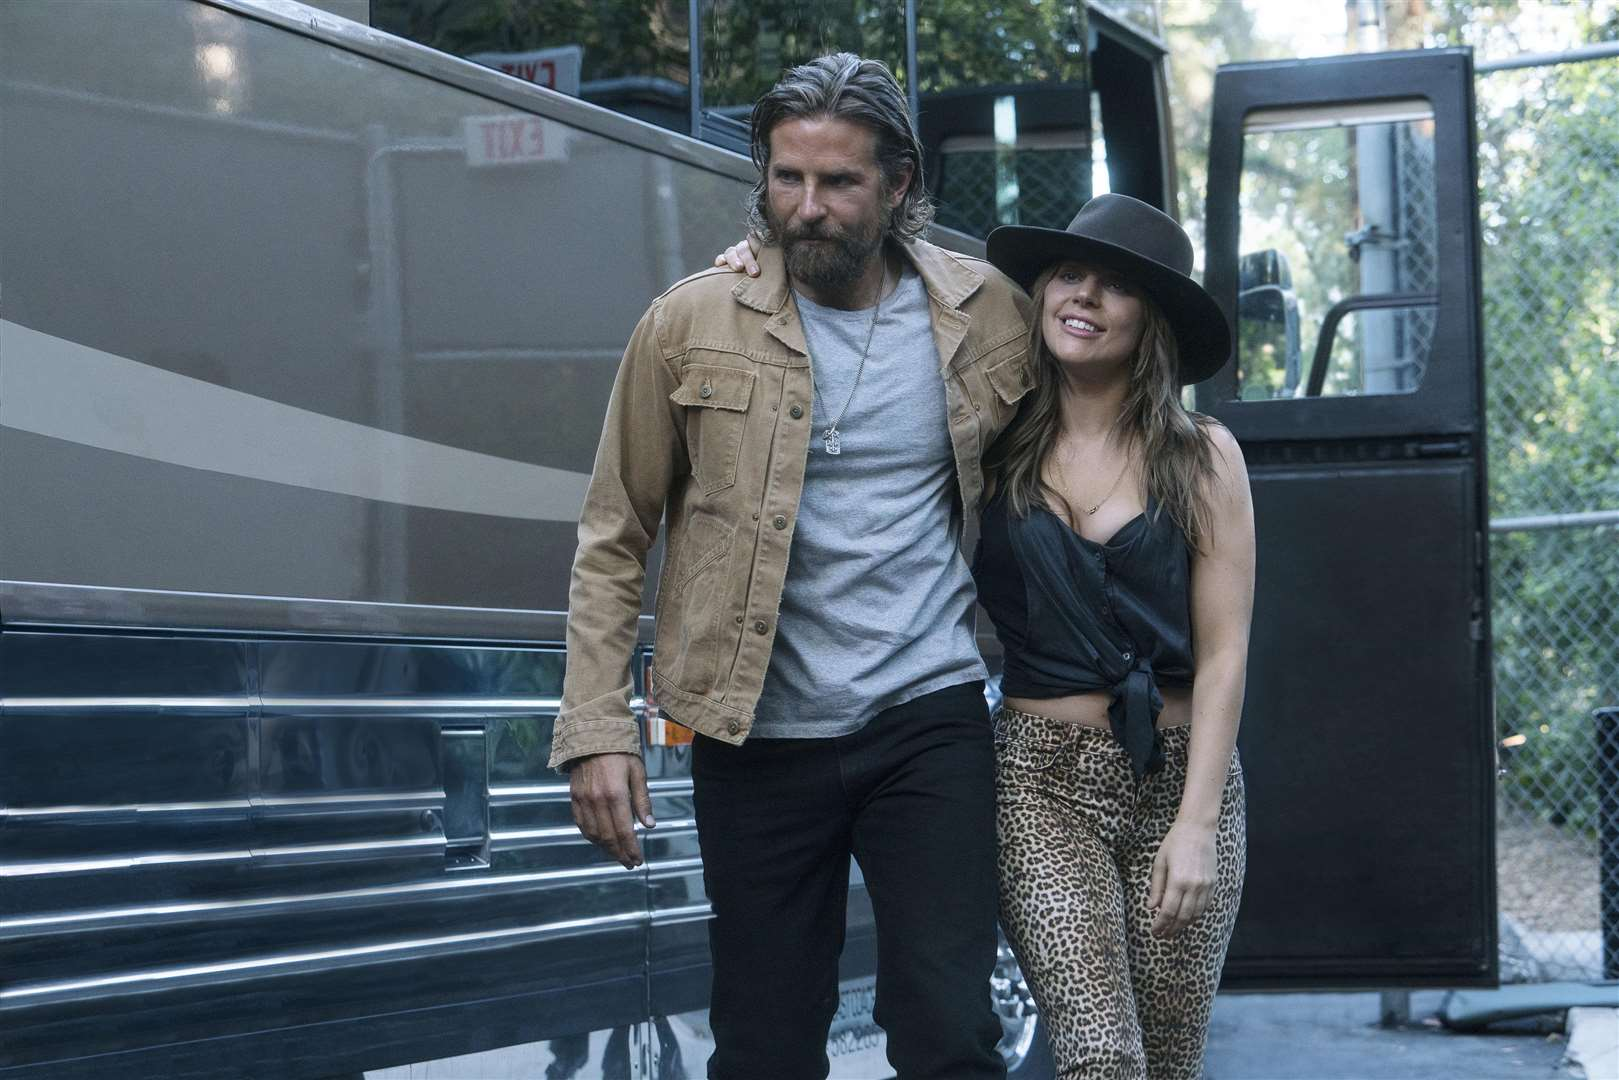 Bradley Cooper as Jackson Maine and Lady Gaga as Ally in A Star is Born. PA Photo/Warner Bros. Entertainment Inc./Clay Enos.